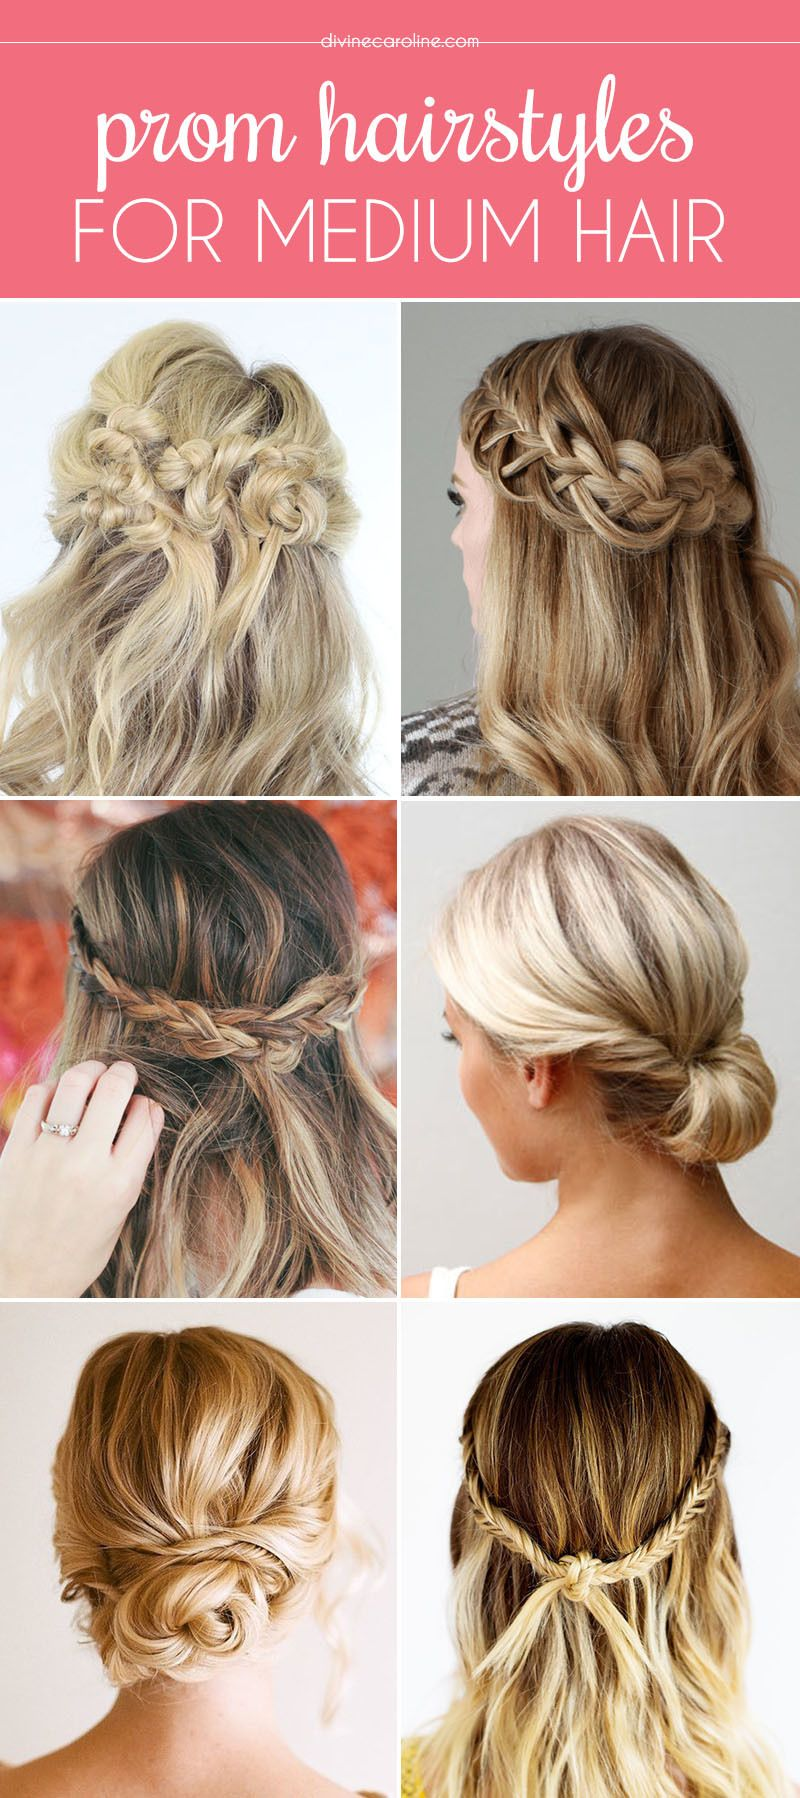 French Hairstyles Mesmerizing Our Favorite Prom Hairstyles For Mediumlength Hair  French Braid